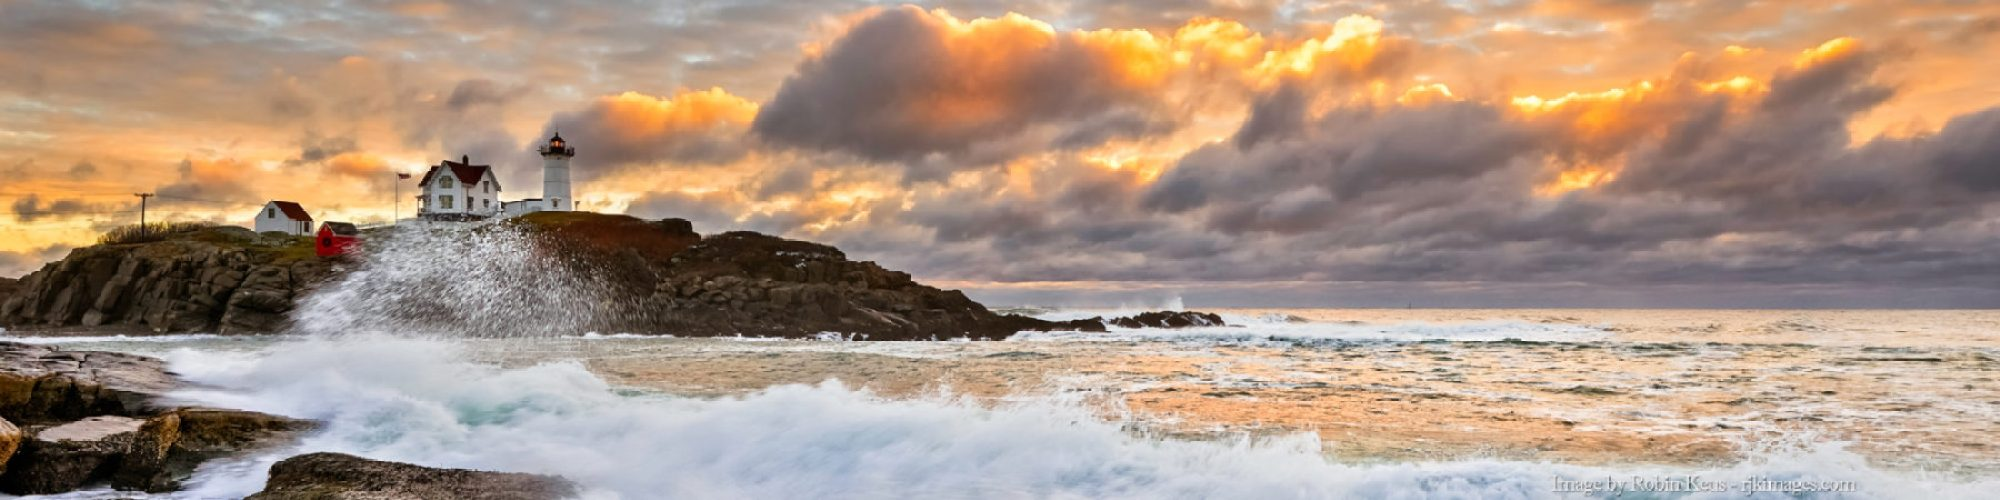 Dawn-at-Nubble-Light-4x1